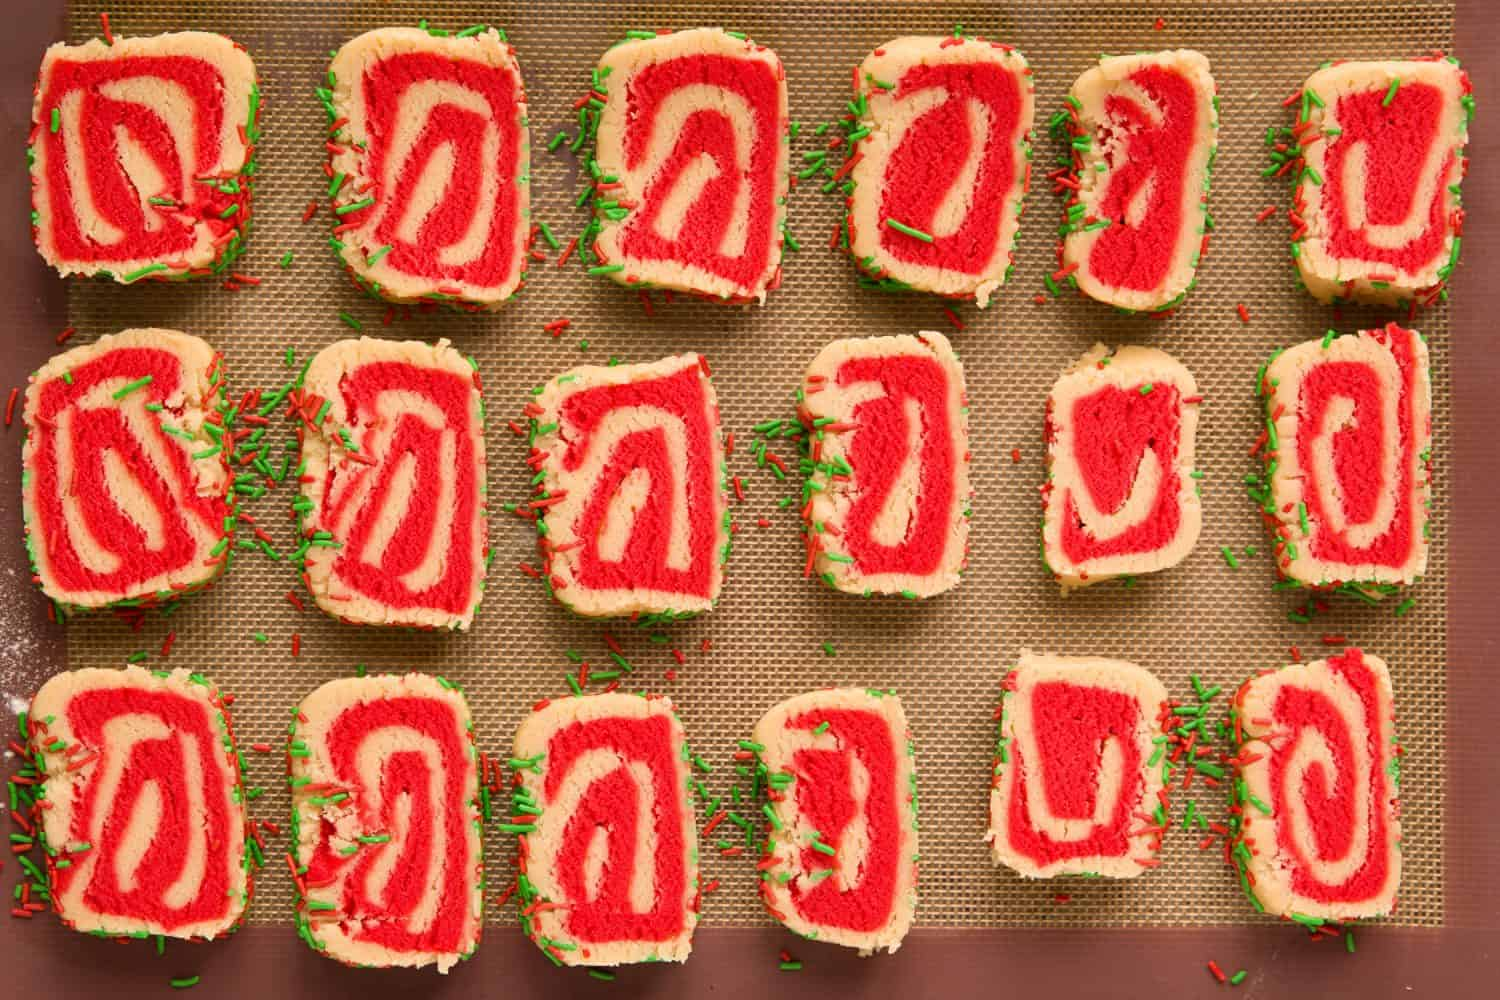 18 red and white vanilla swirl biscuits.